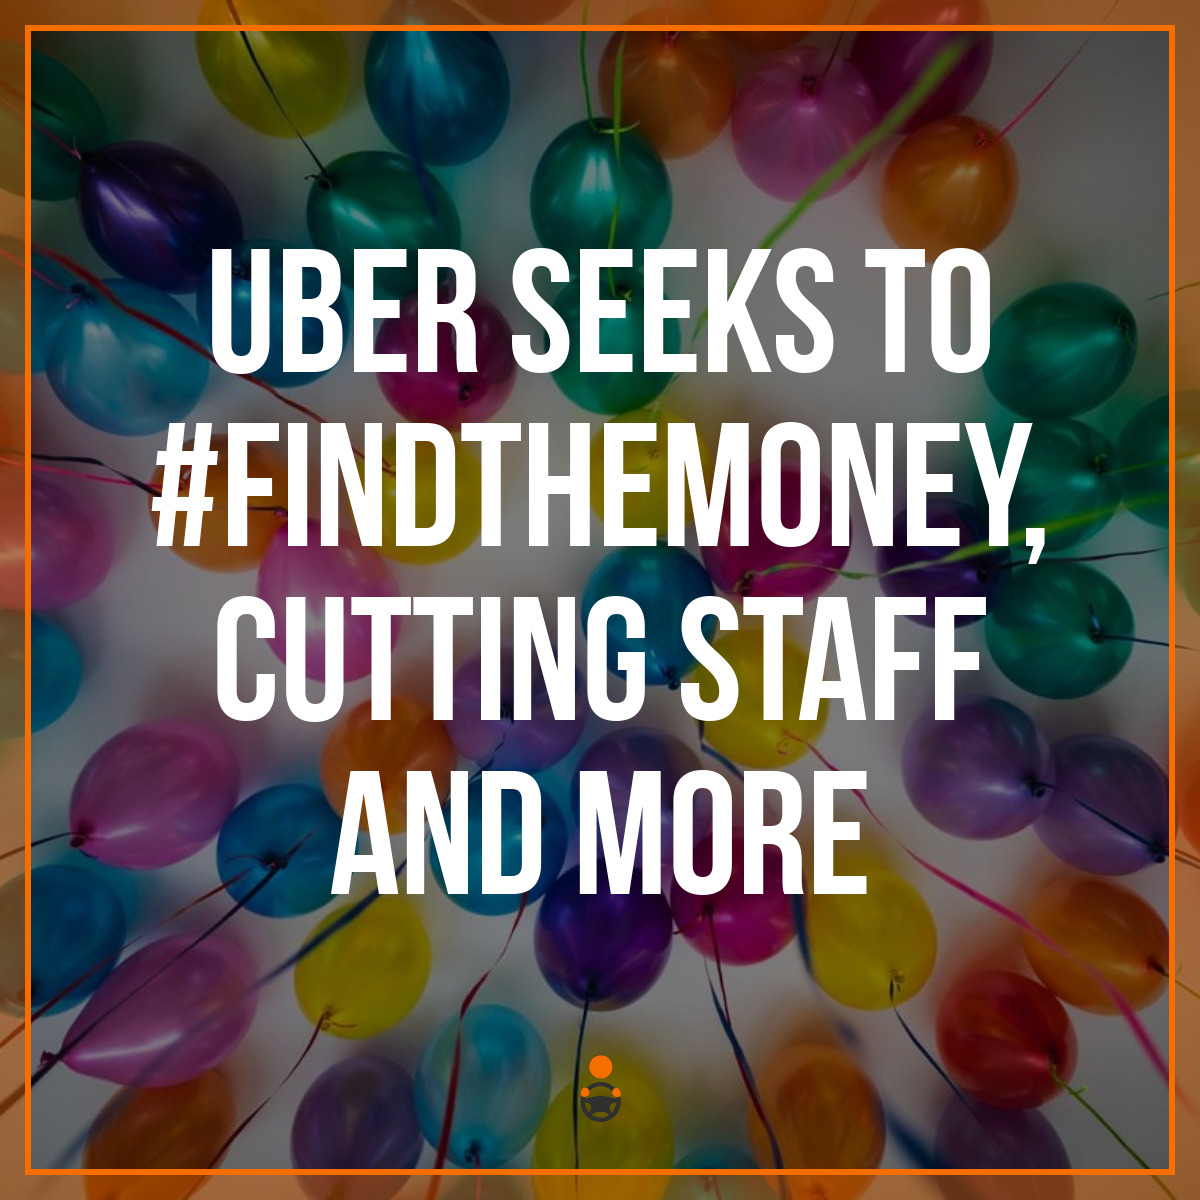 Uber Seeks to #FindTheMoney, Cutting Staff and More